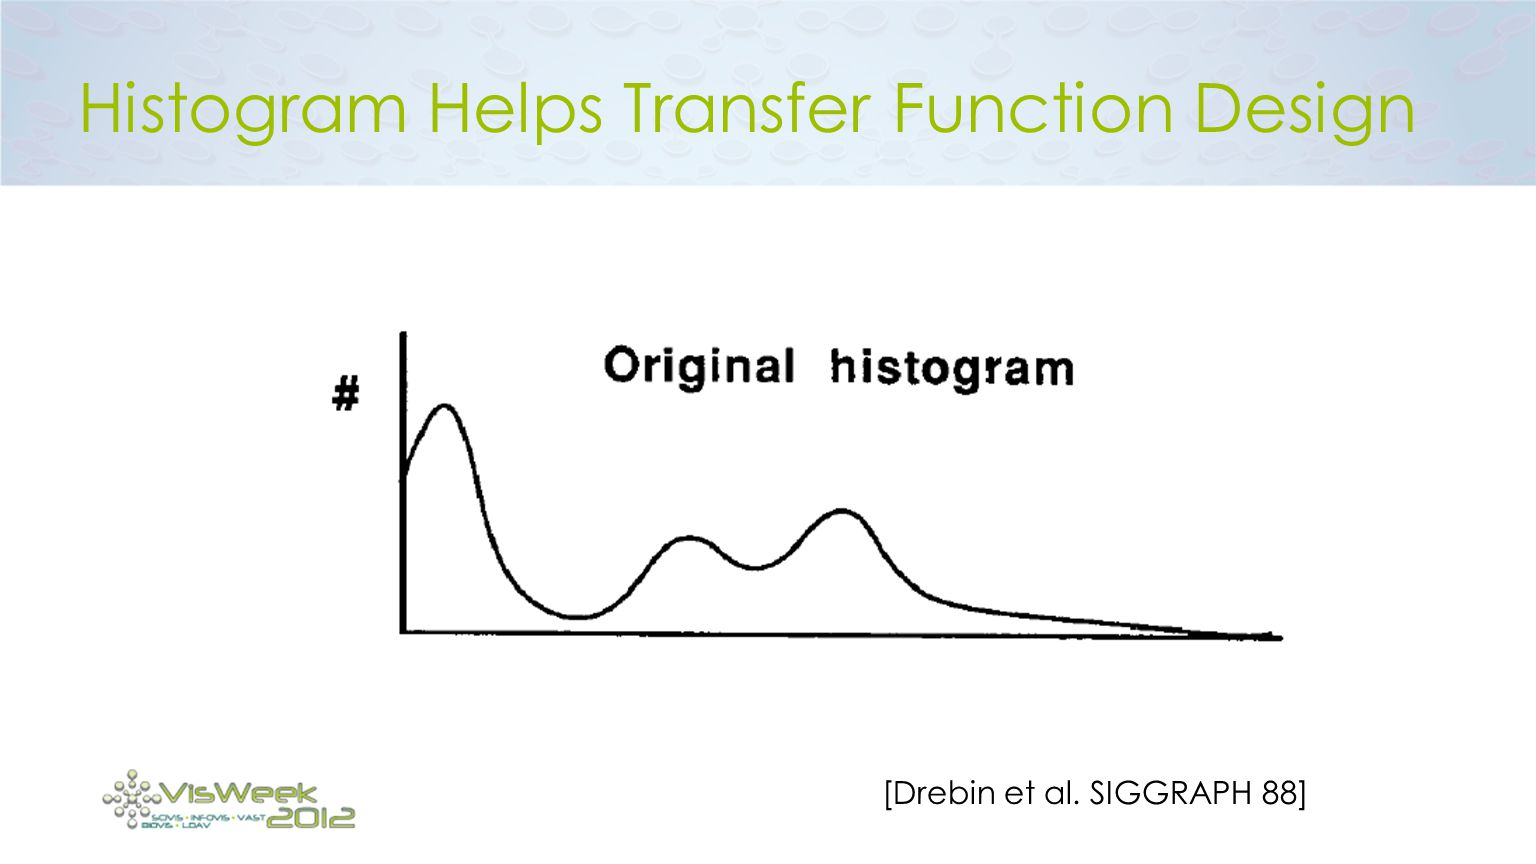 Histogram Helps Transfer Function Design